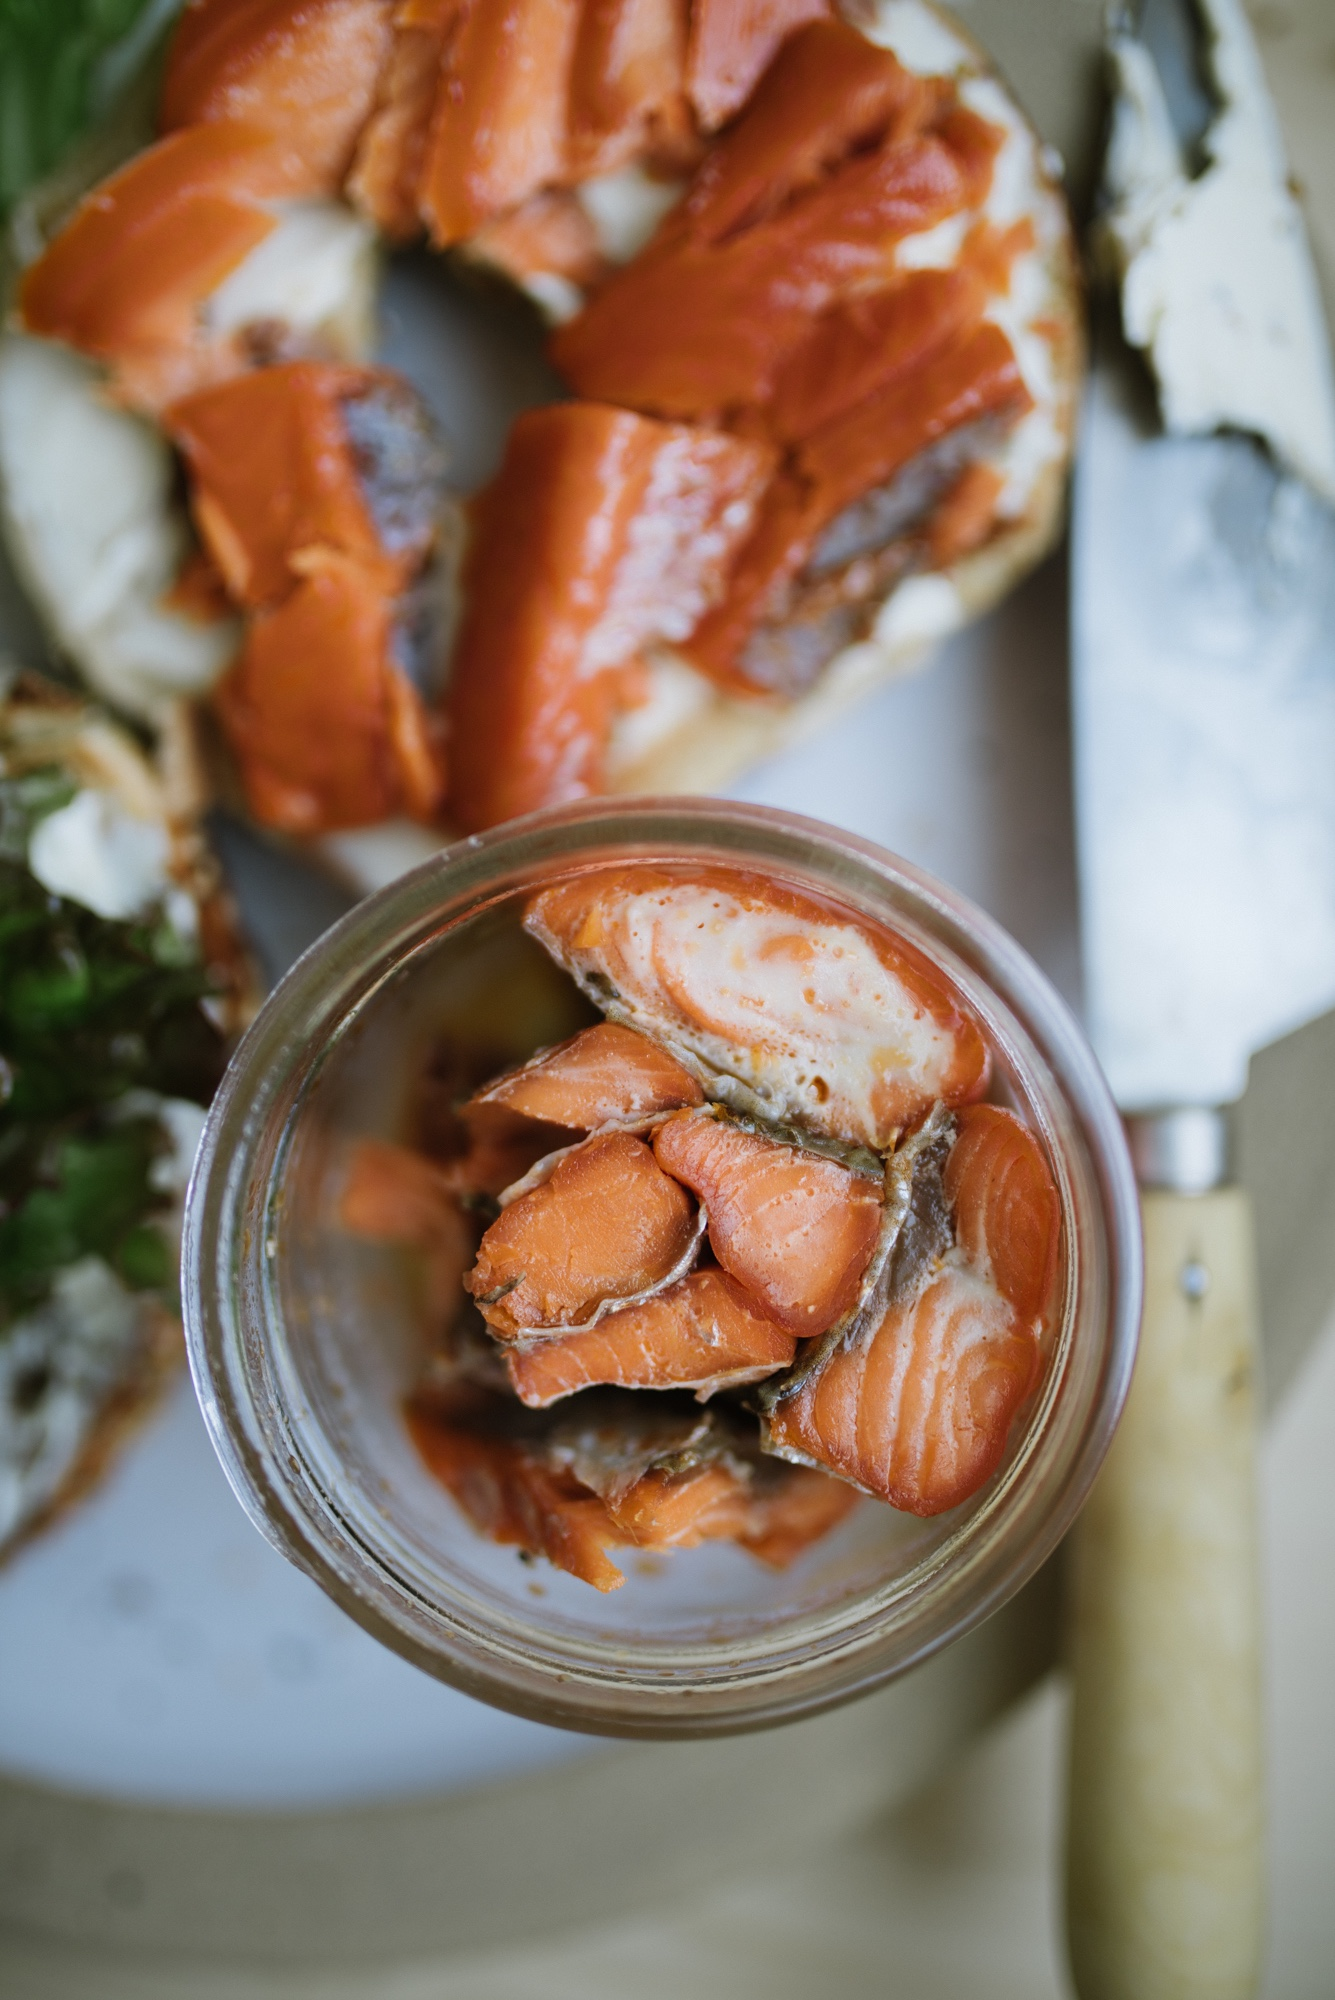 canned sockeye salmon from Drifters Fish